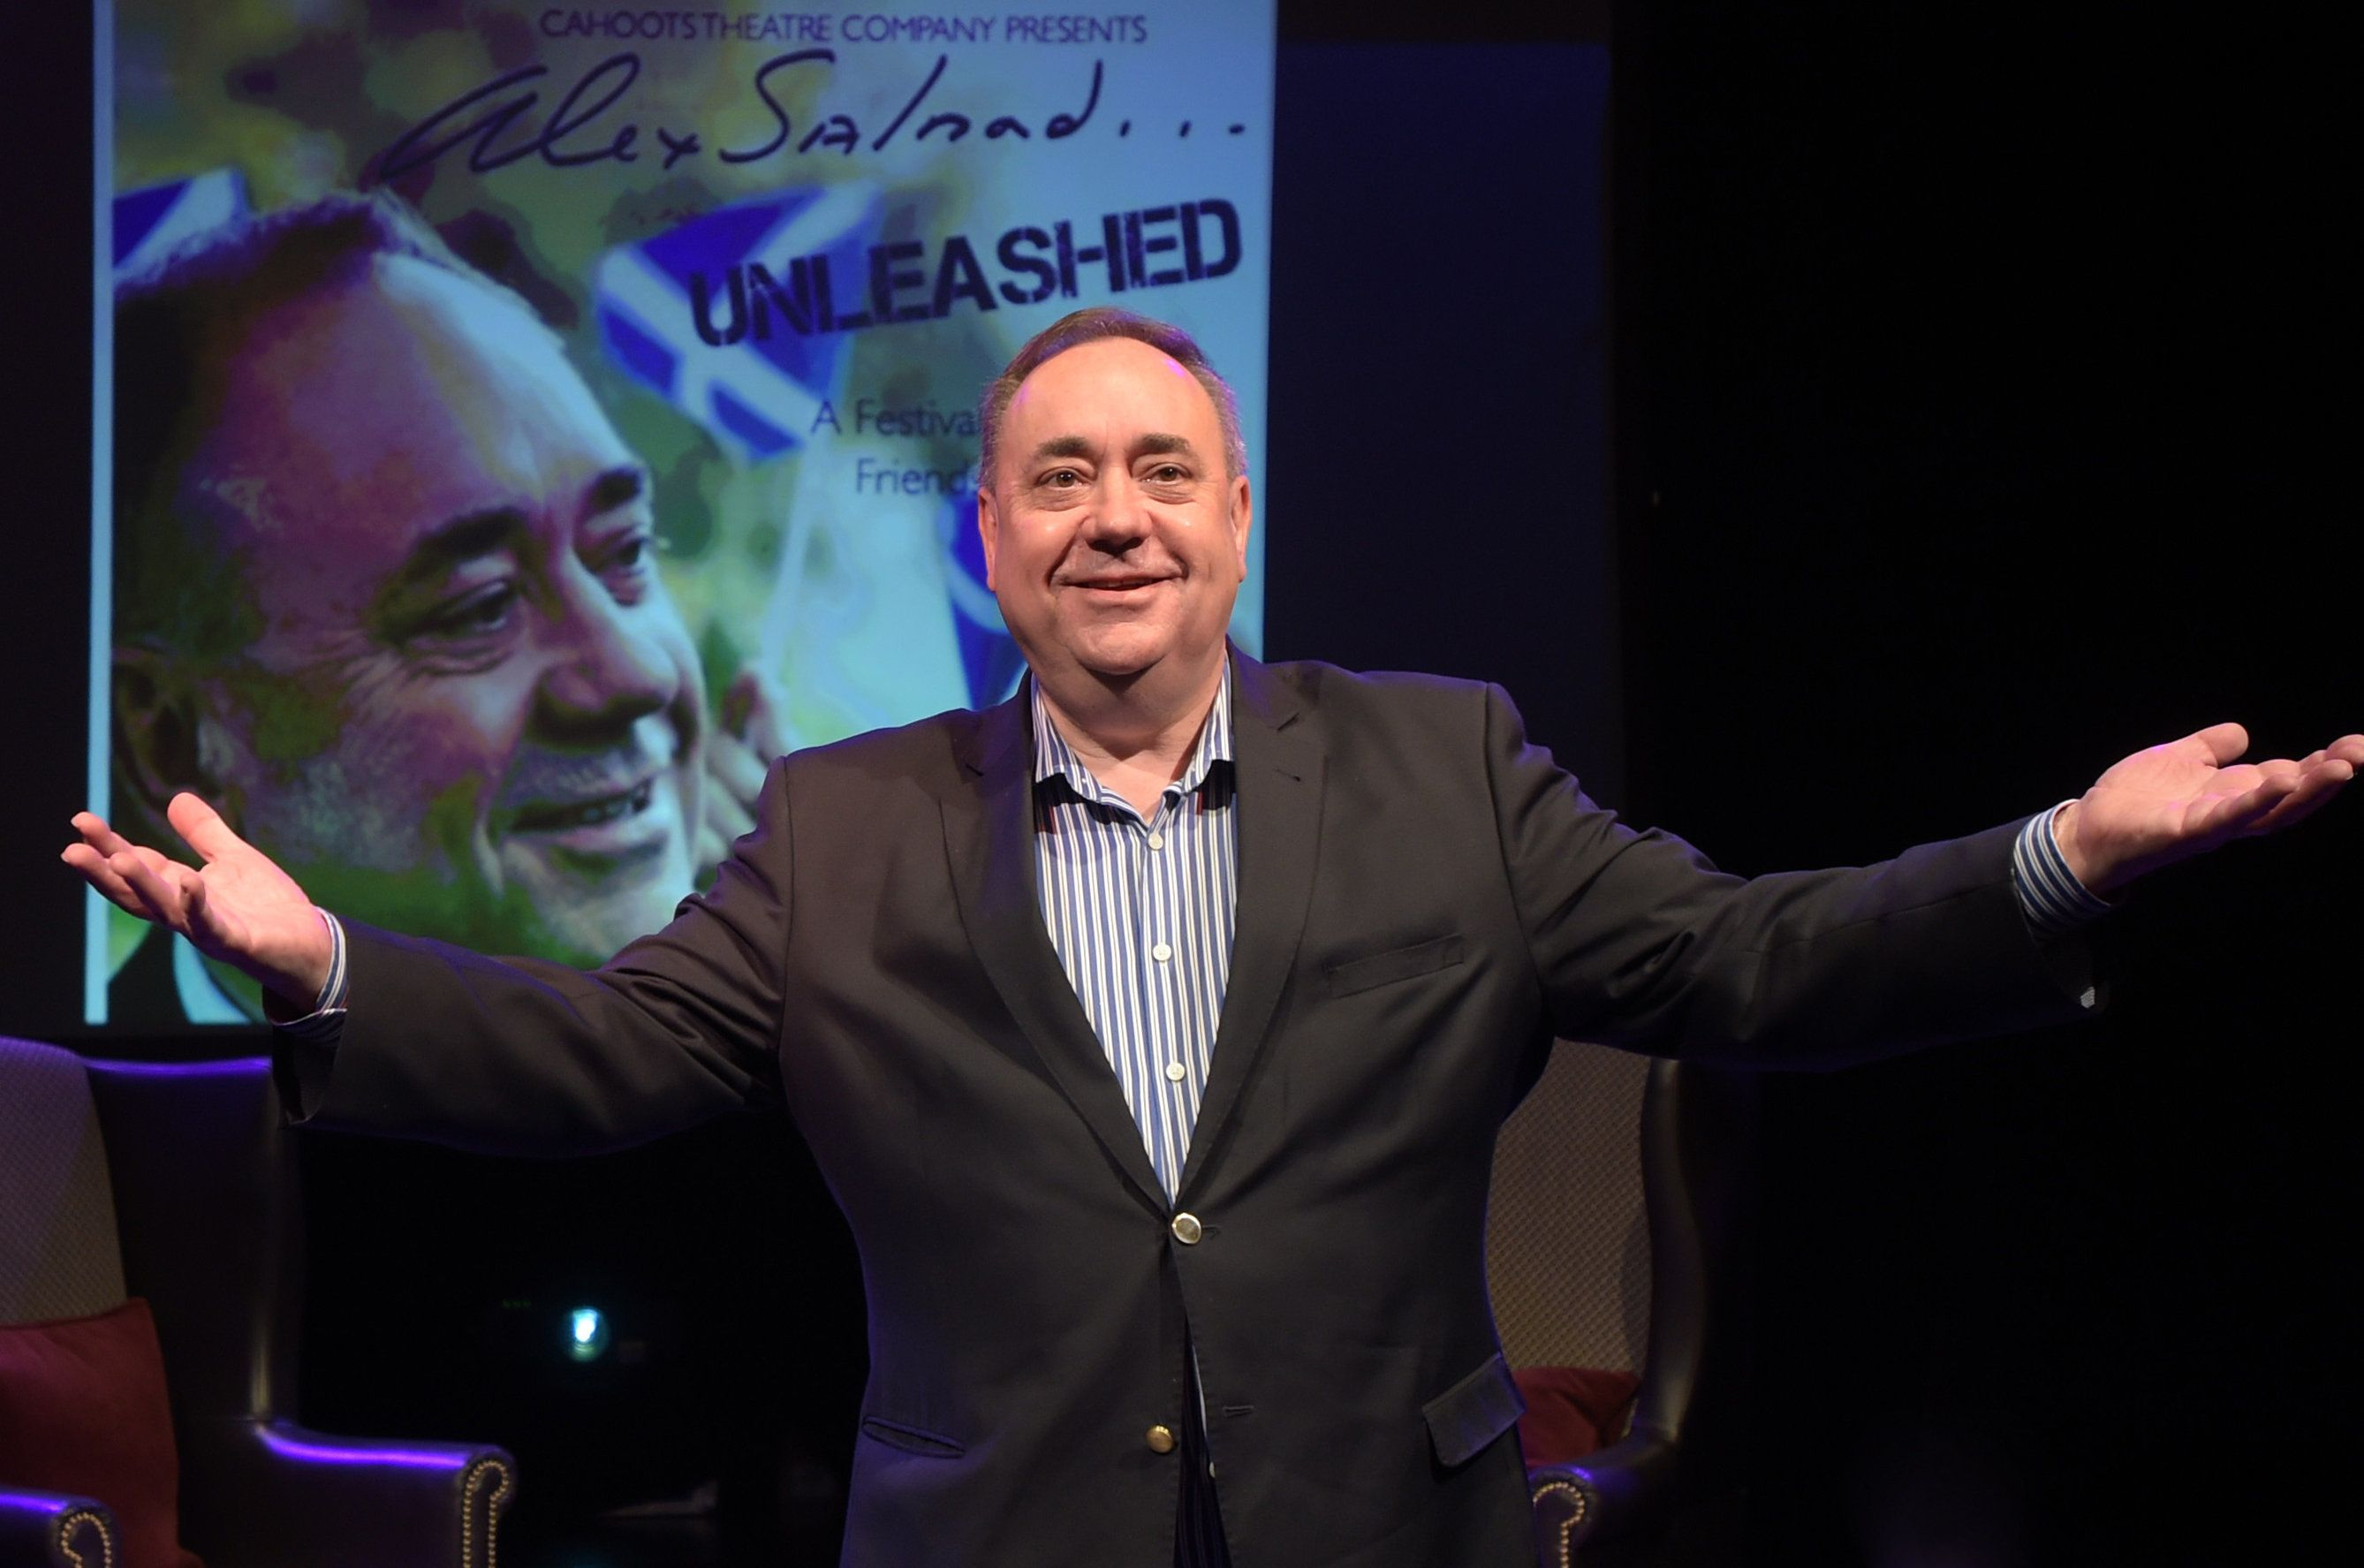 Alex Salmond Made A 'Joke' About Making Female Leaders Orgasm - And It Was Truly